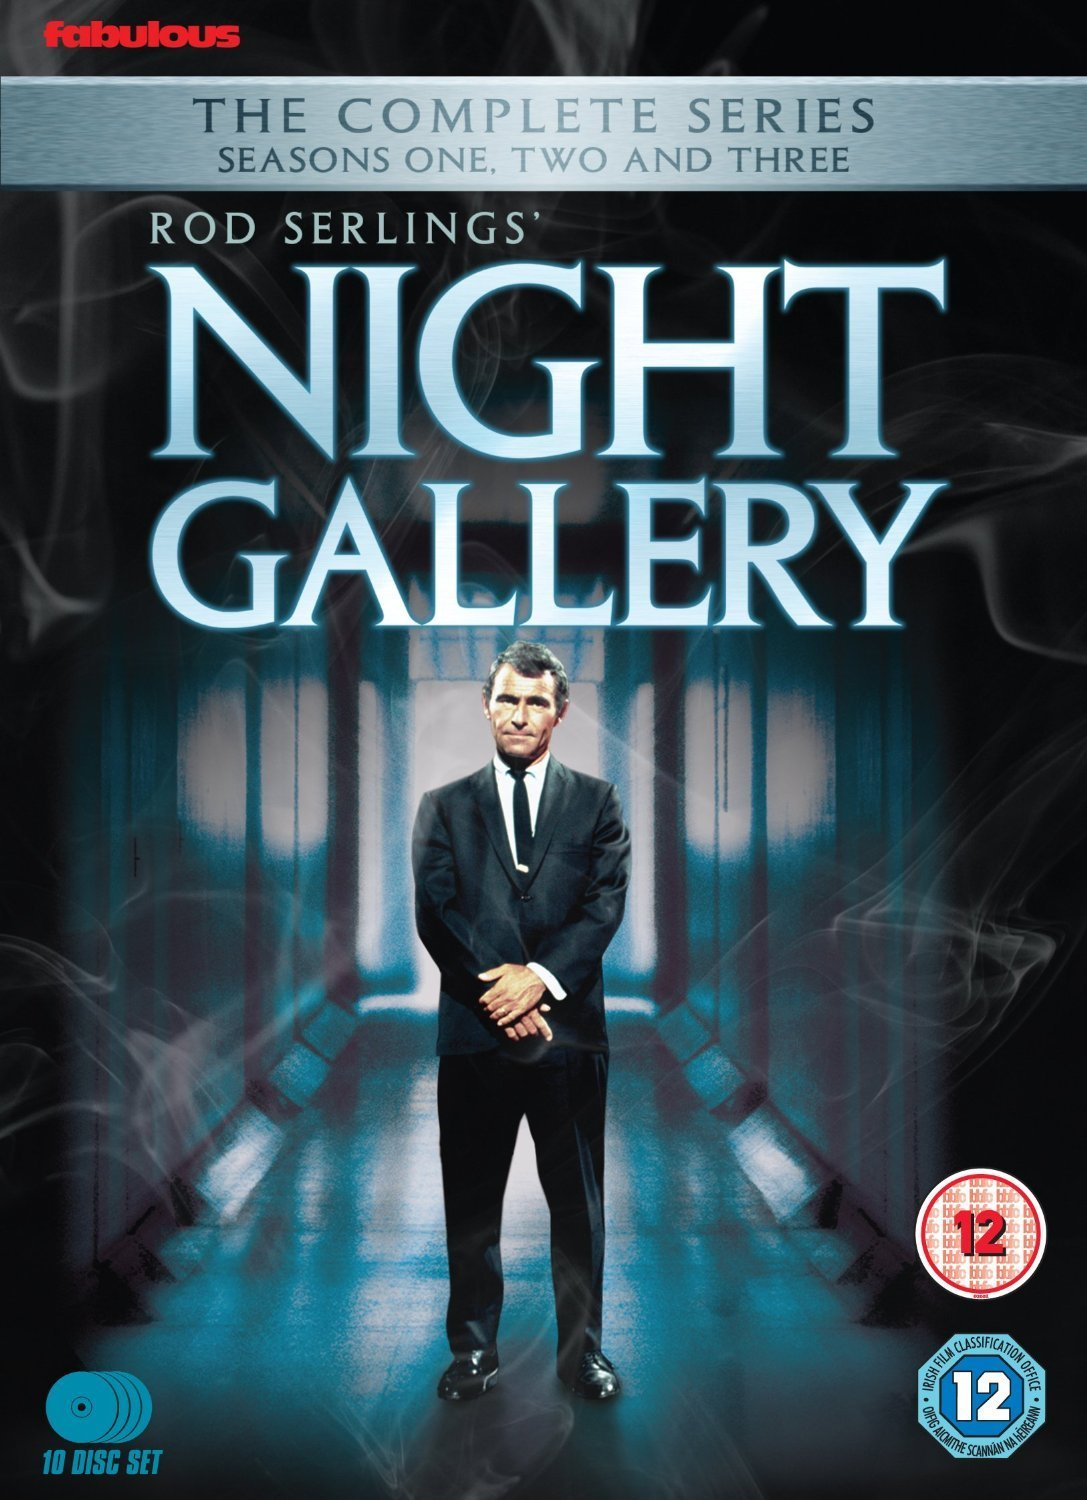 Night Gallery: The Complete Series DVD Review